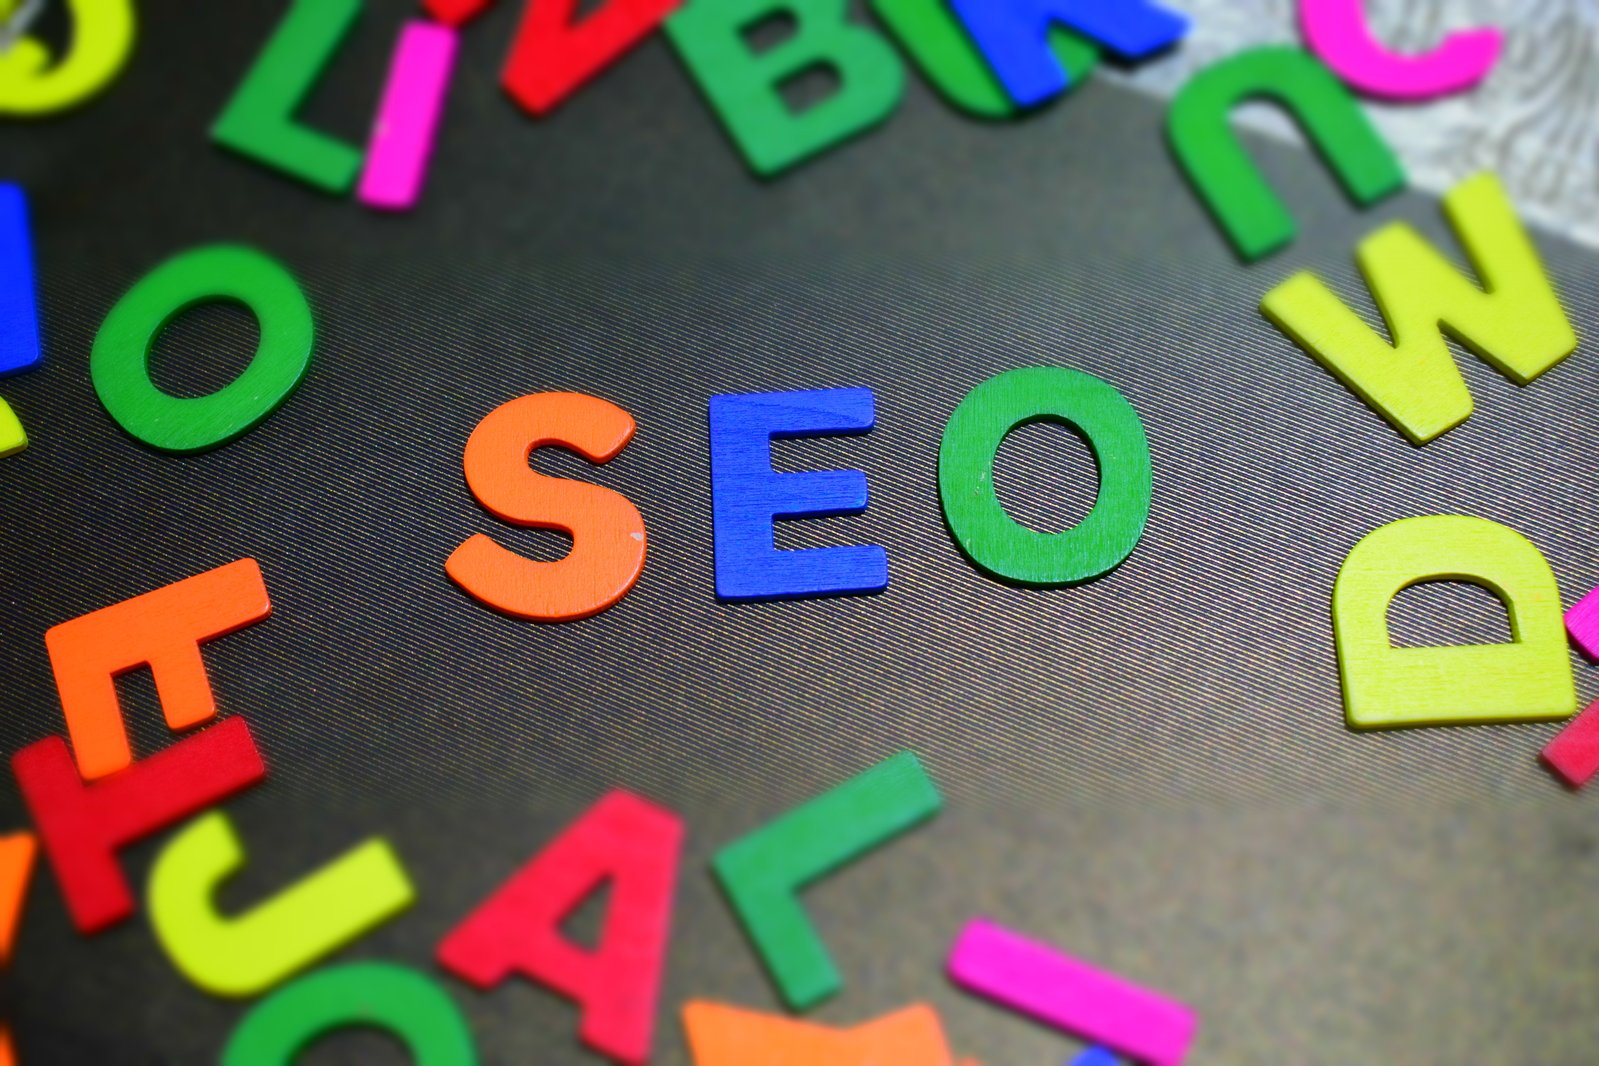 Free image for your seo blog or web marketing website!